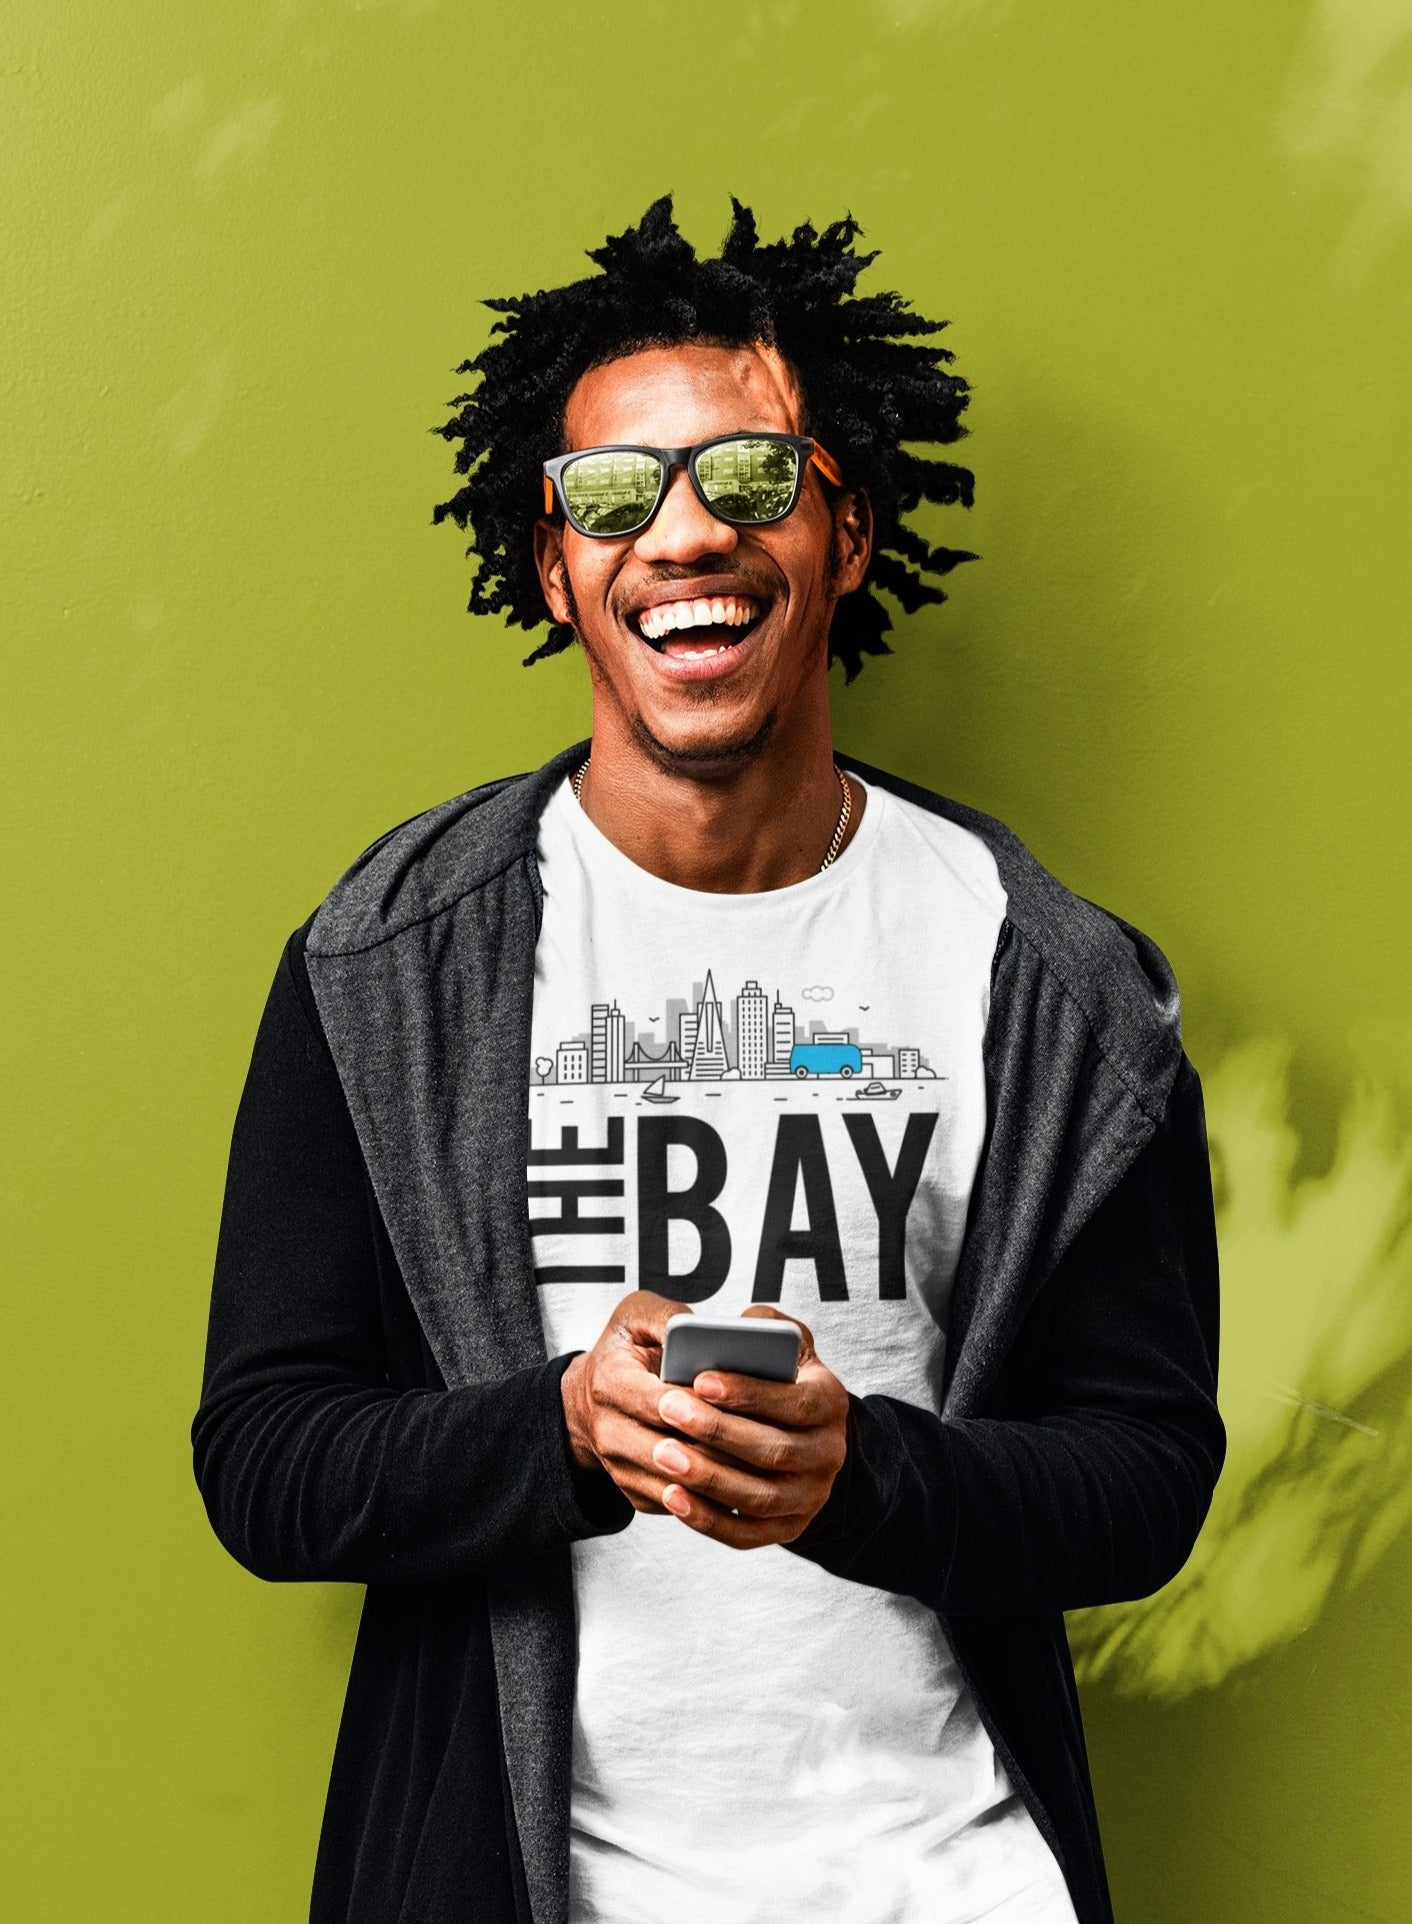 LavaMaeX THE BAY T-SHIRT - Beats 4 Hope